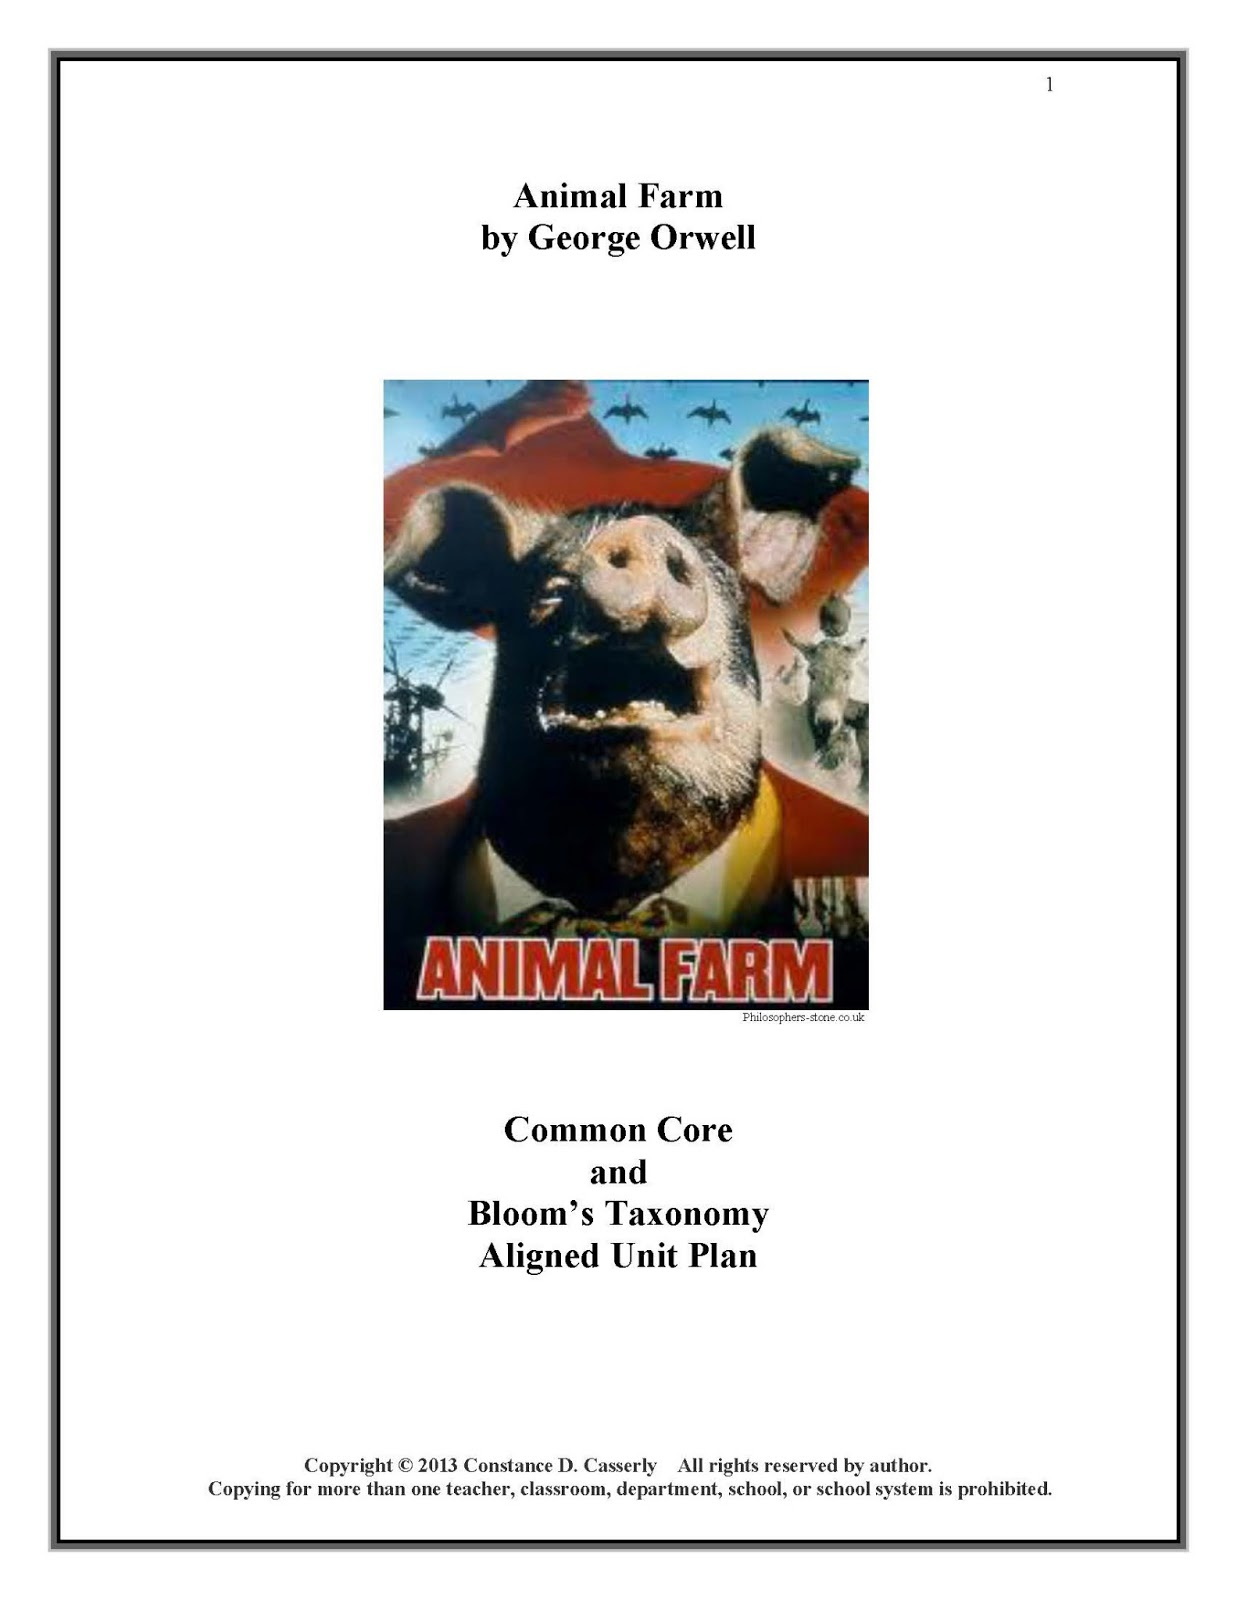 the parallels of george orwells novel animal farm to the russian revolution of 1917 Many claim that george orwell wrote animal farm as a metaphoric gibe of the russian revolution in fact, some go as far as drawing parallels between the characters in the book and the key figures of the revolution.